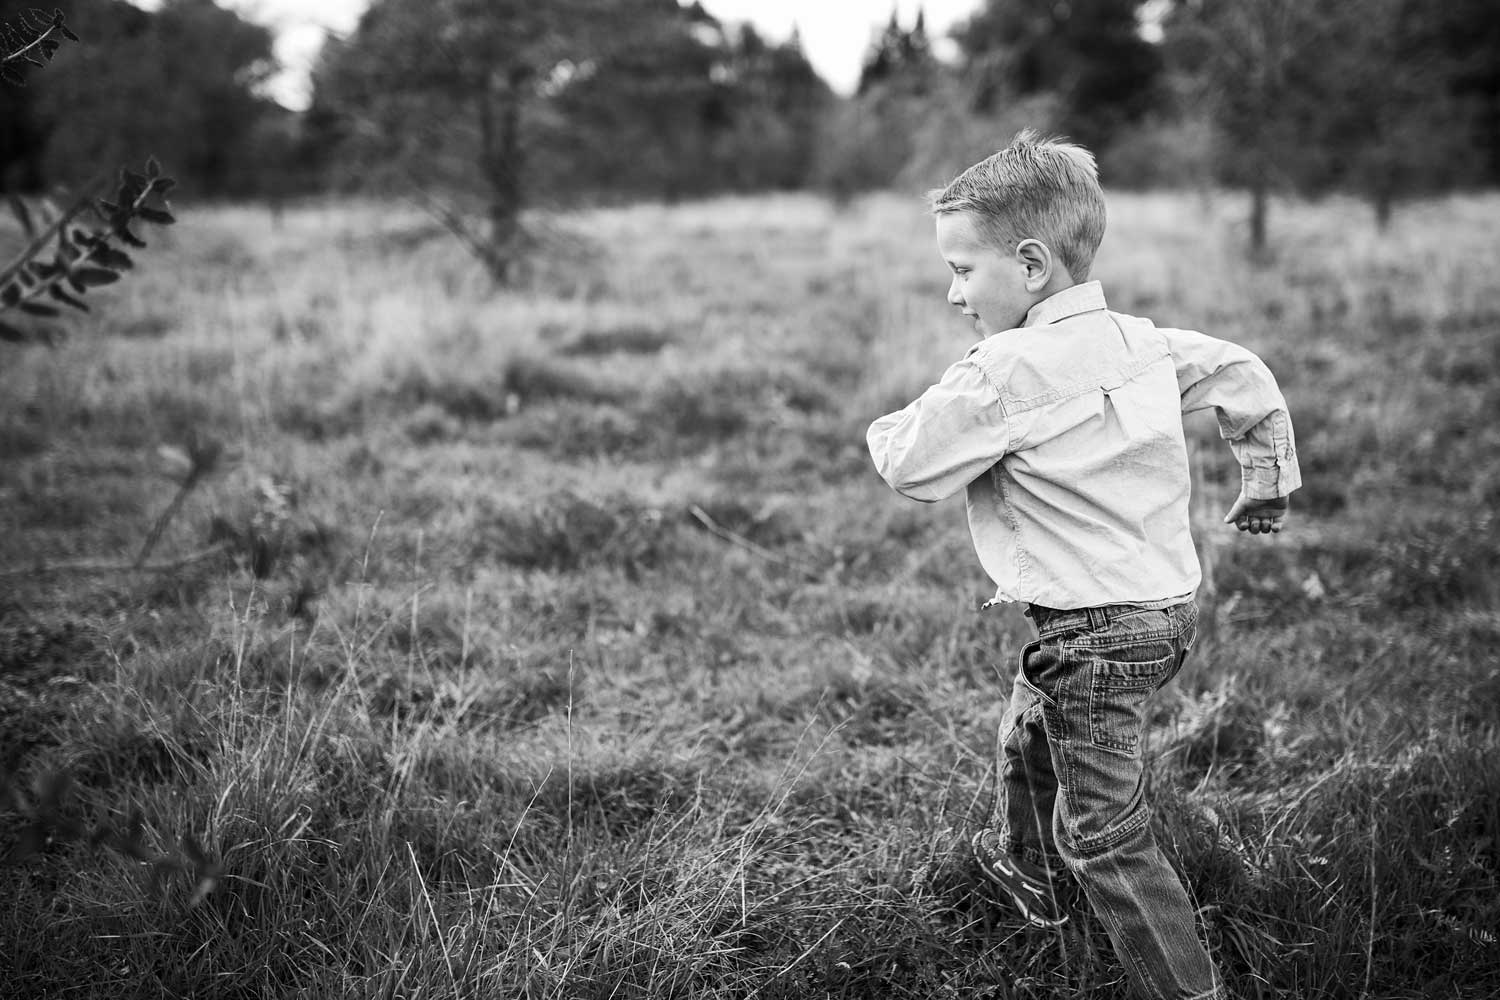 A boy runs in a field in Roseville, California during a photo session with Amy Wright Photography.